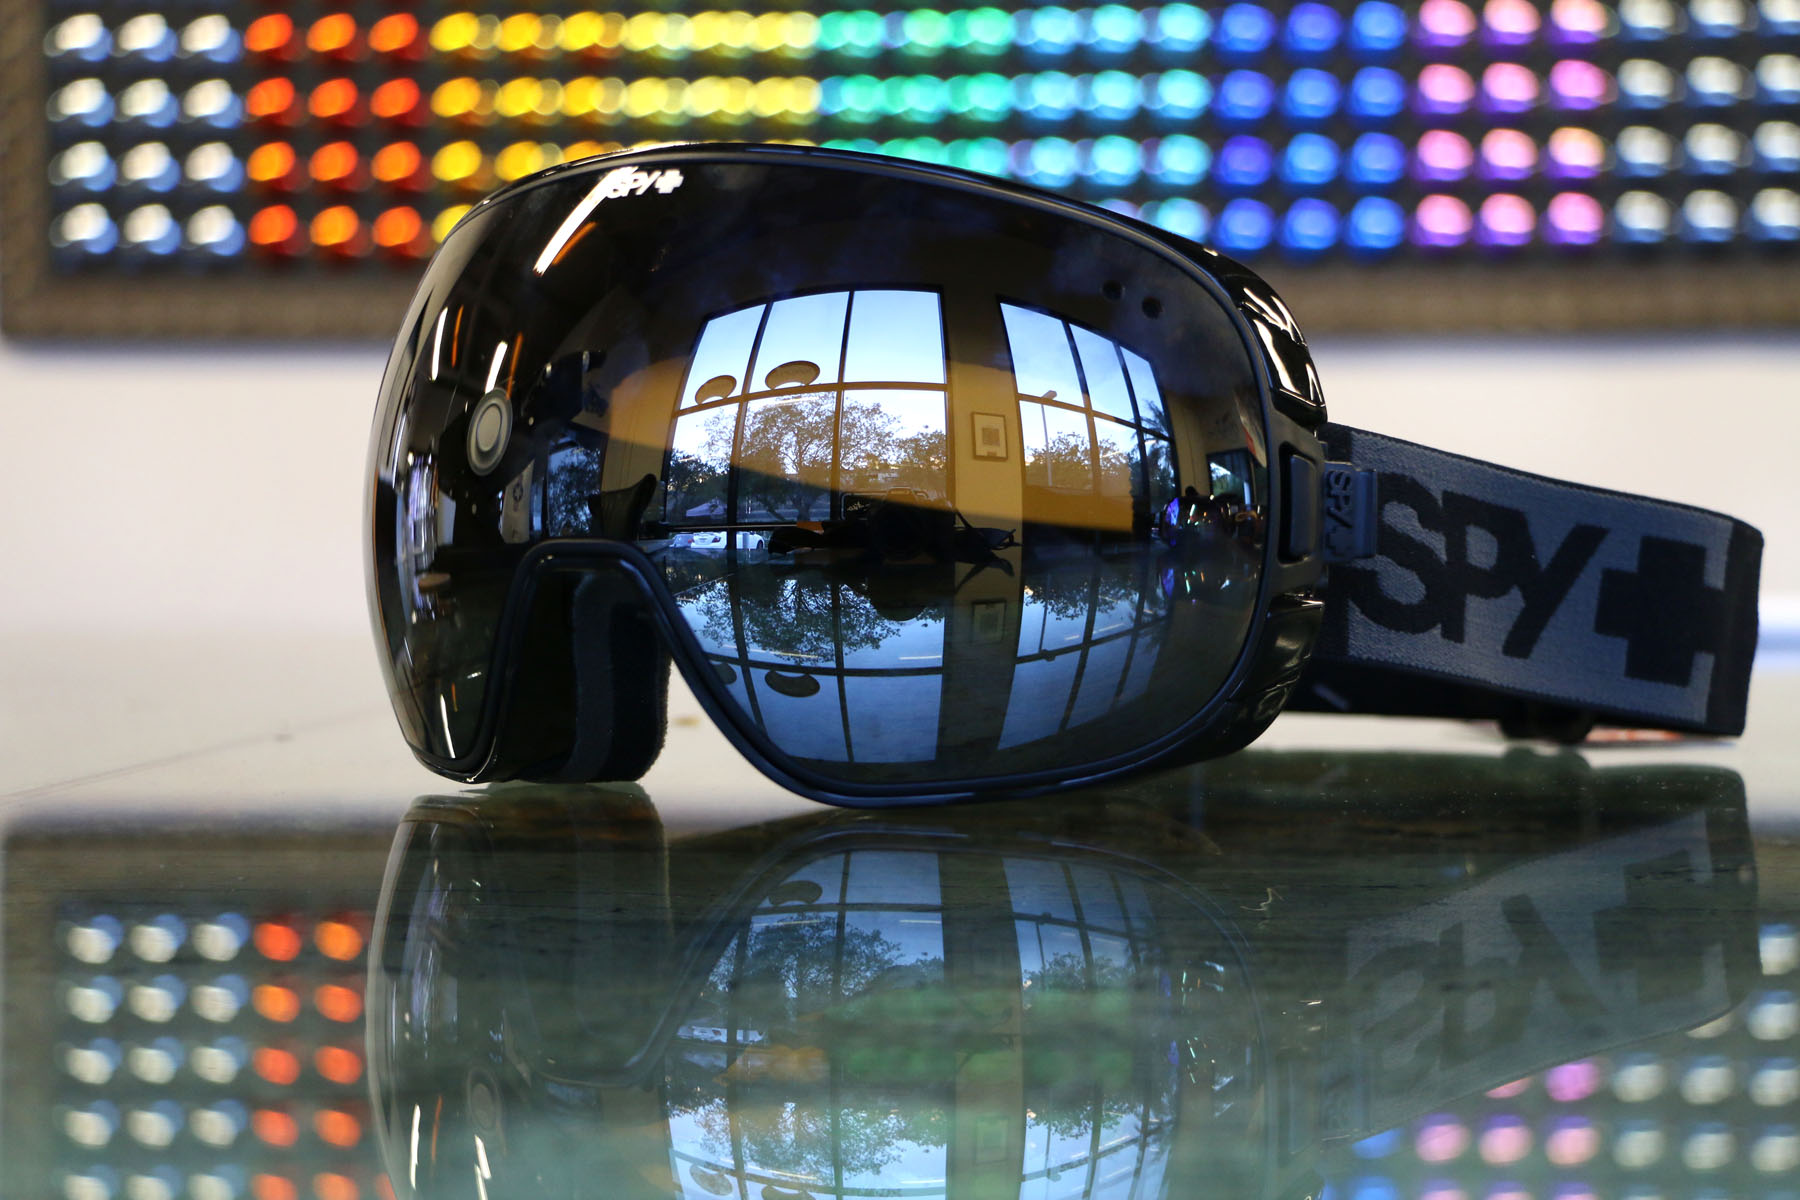 Spy Doom Prescription Ski Goggles & Snowboarding Goggles